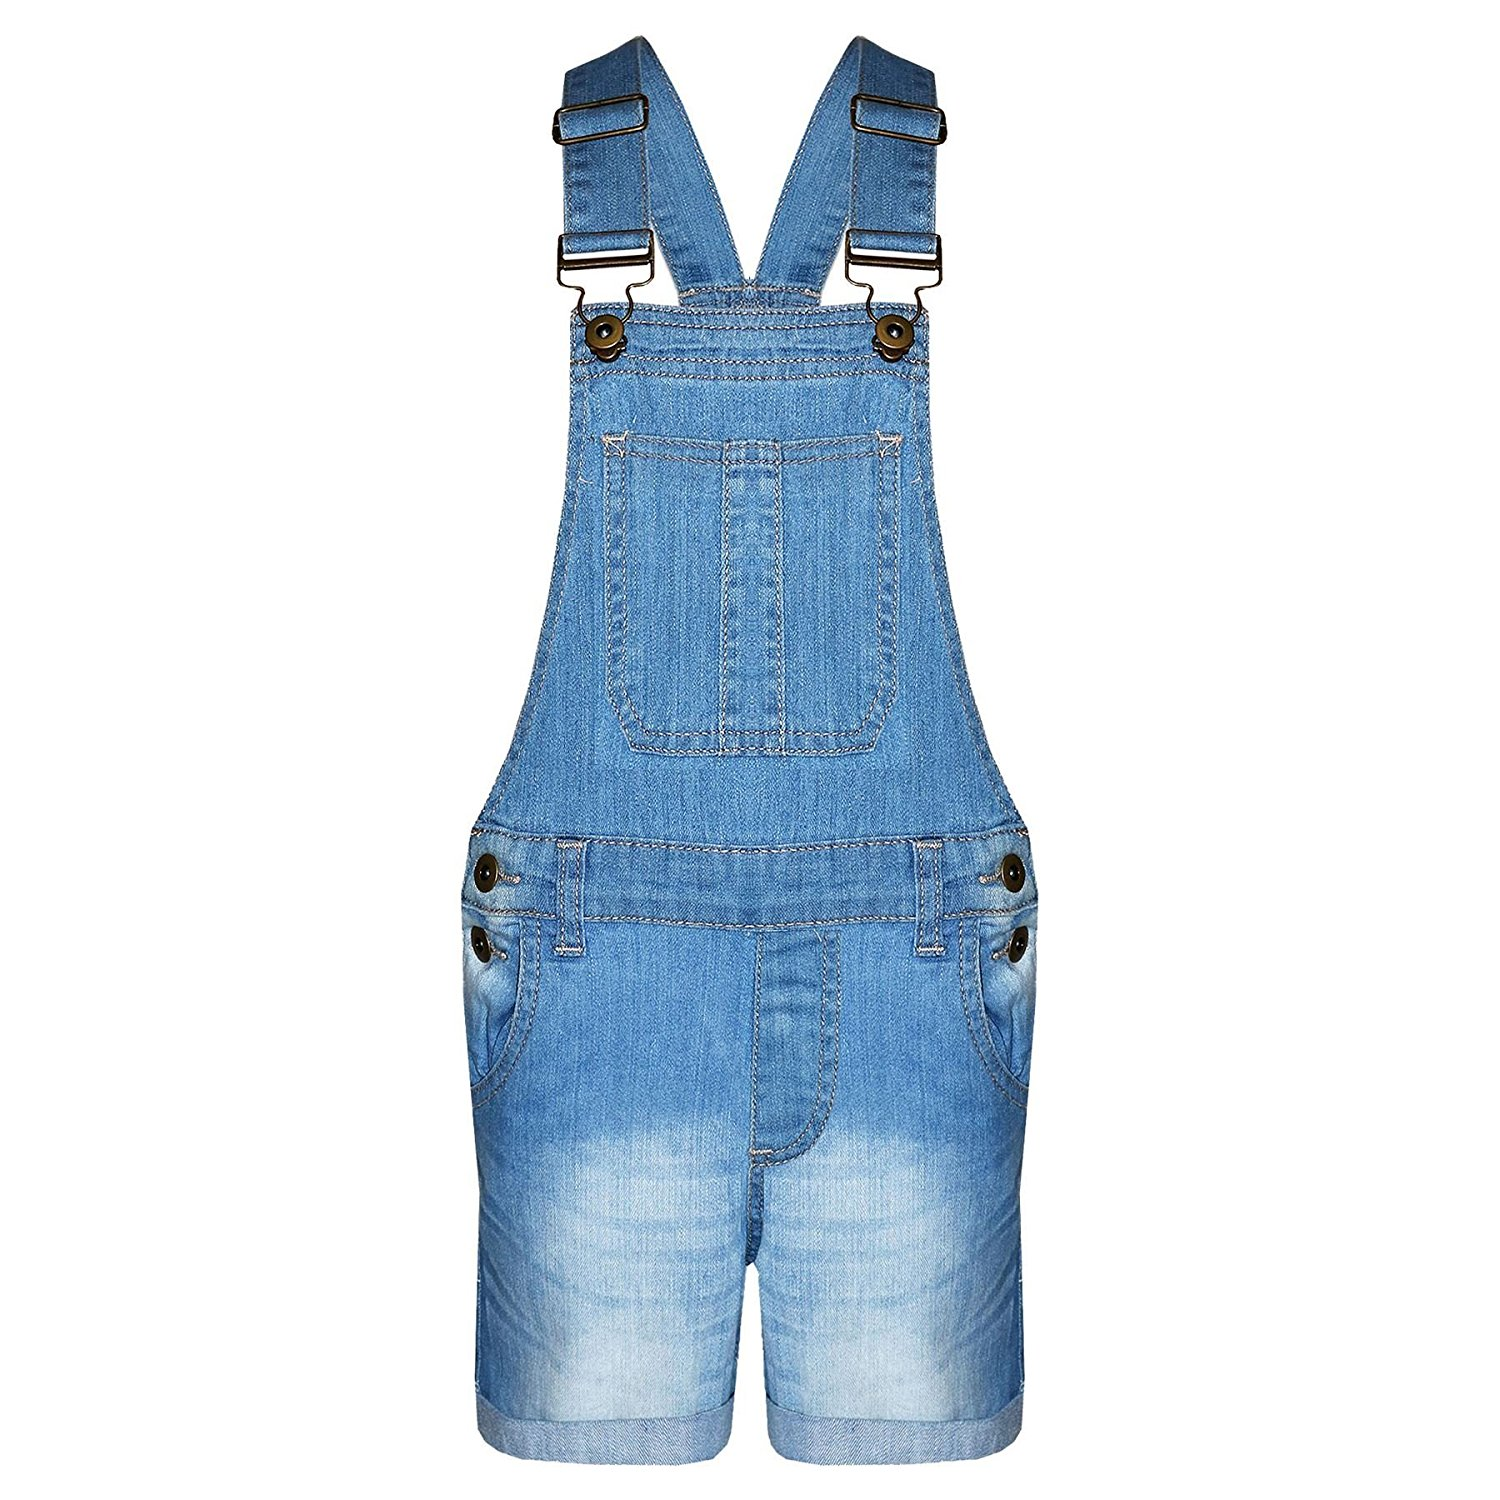 602fc64667be Get Quotations · A2Z 4 Kids Girls Denim Stretch Dungaree Shorts Jumpsuit  Playsuit All in One